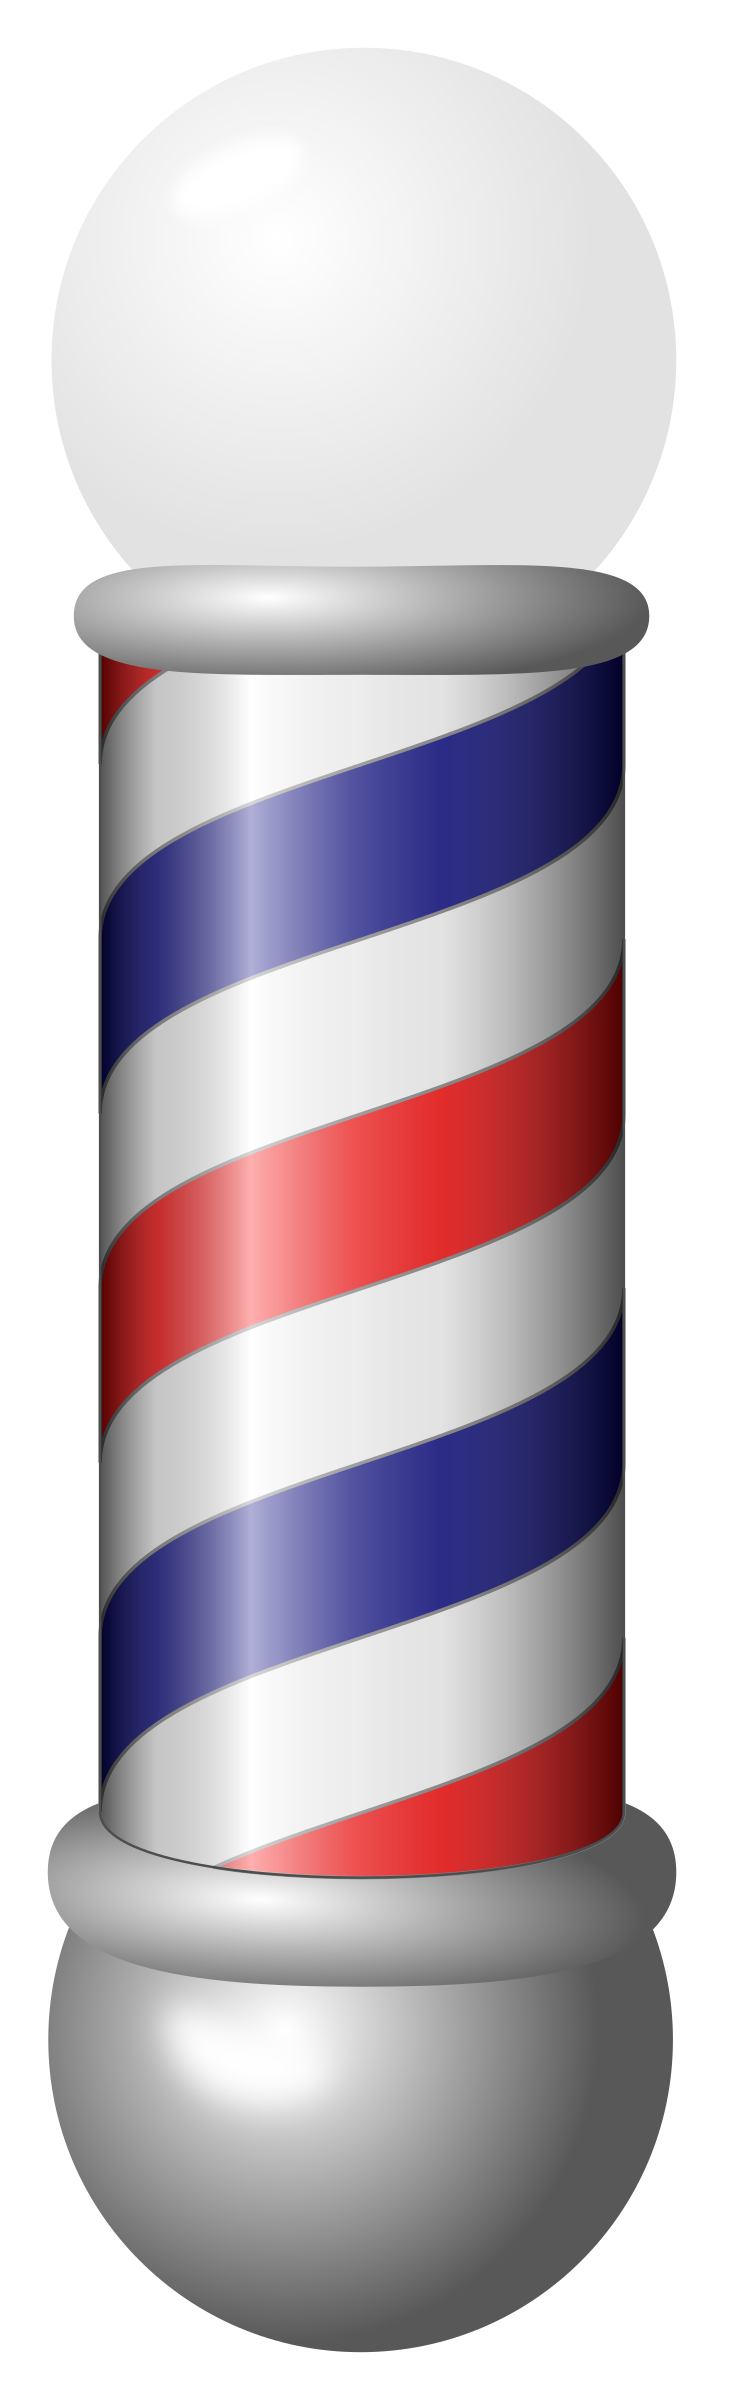 barber pole by jarda